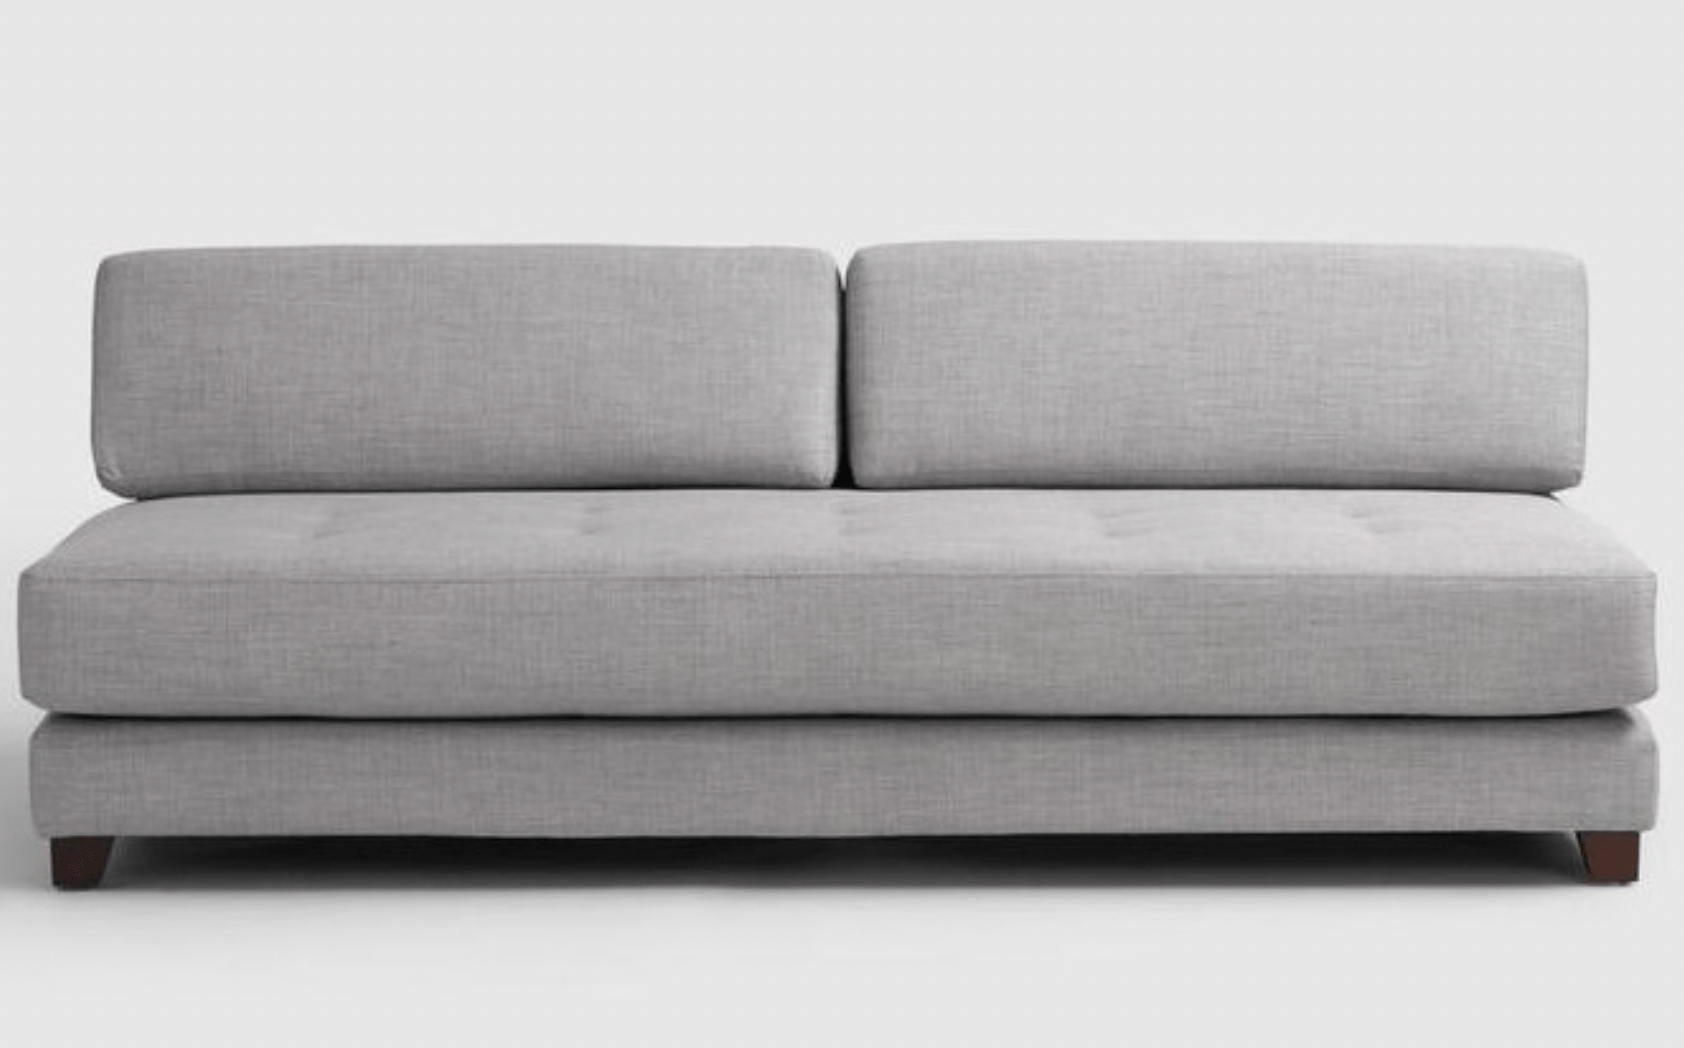 cost plus world market recalls daybeds